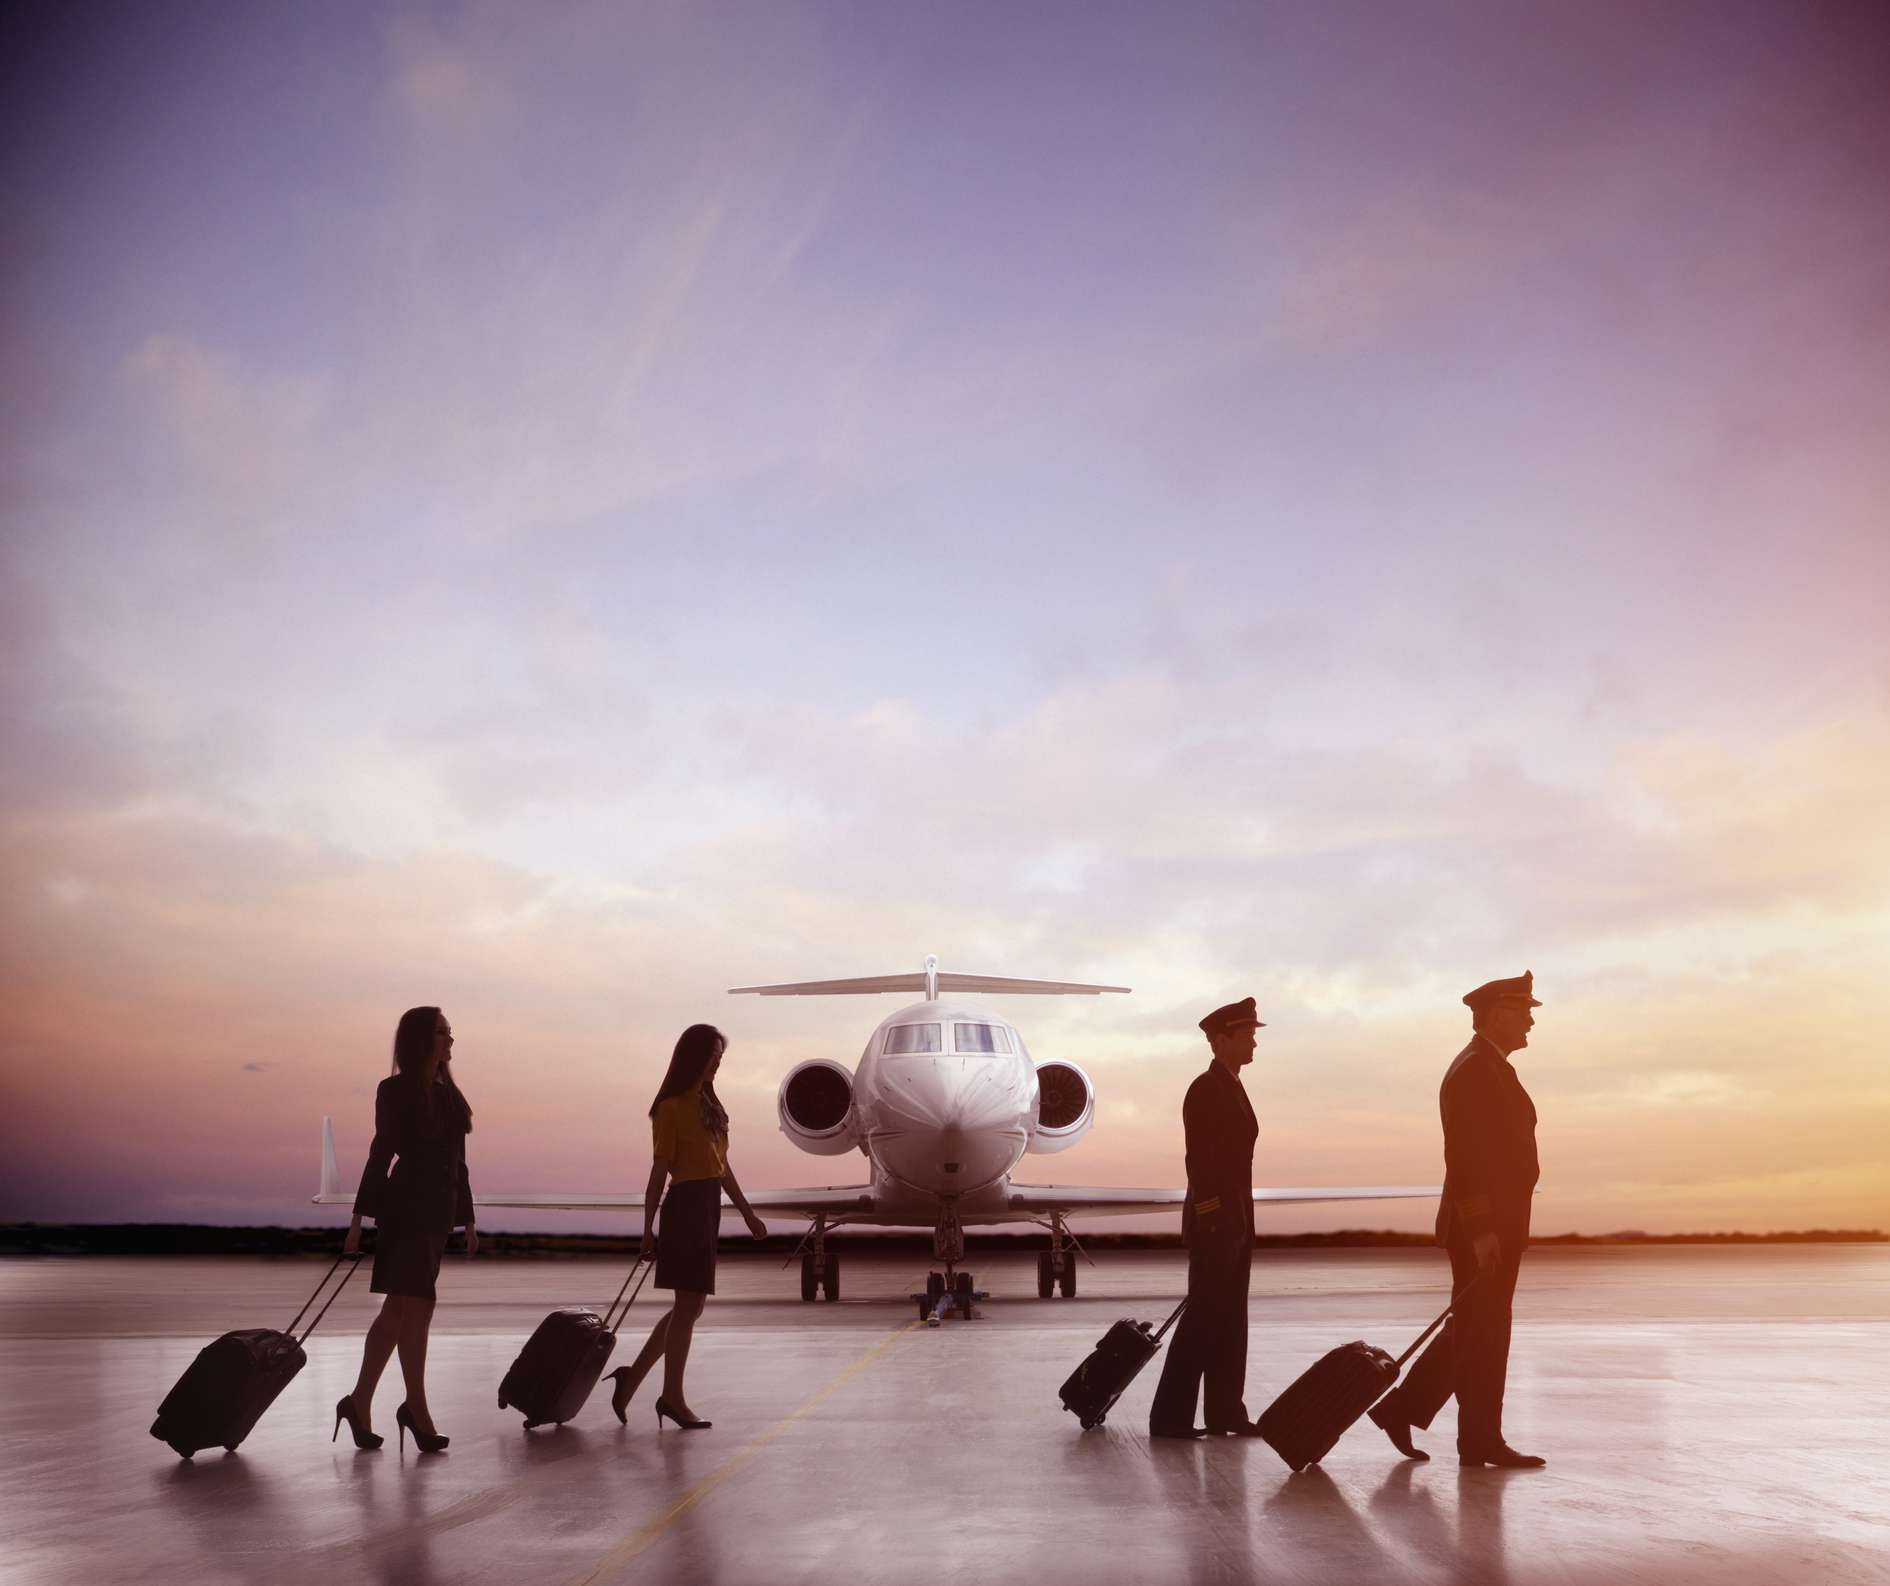 Pilots and flight attendants walking on airport runway in front of a jet.